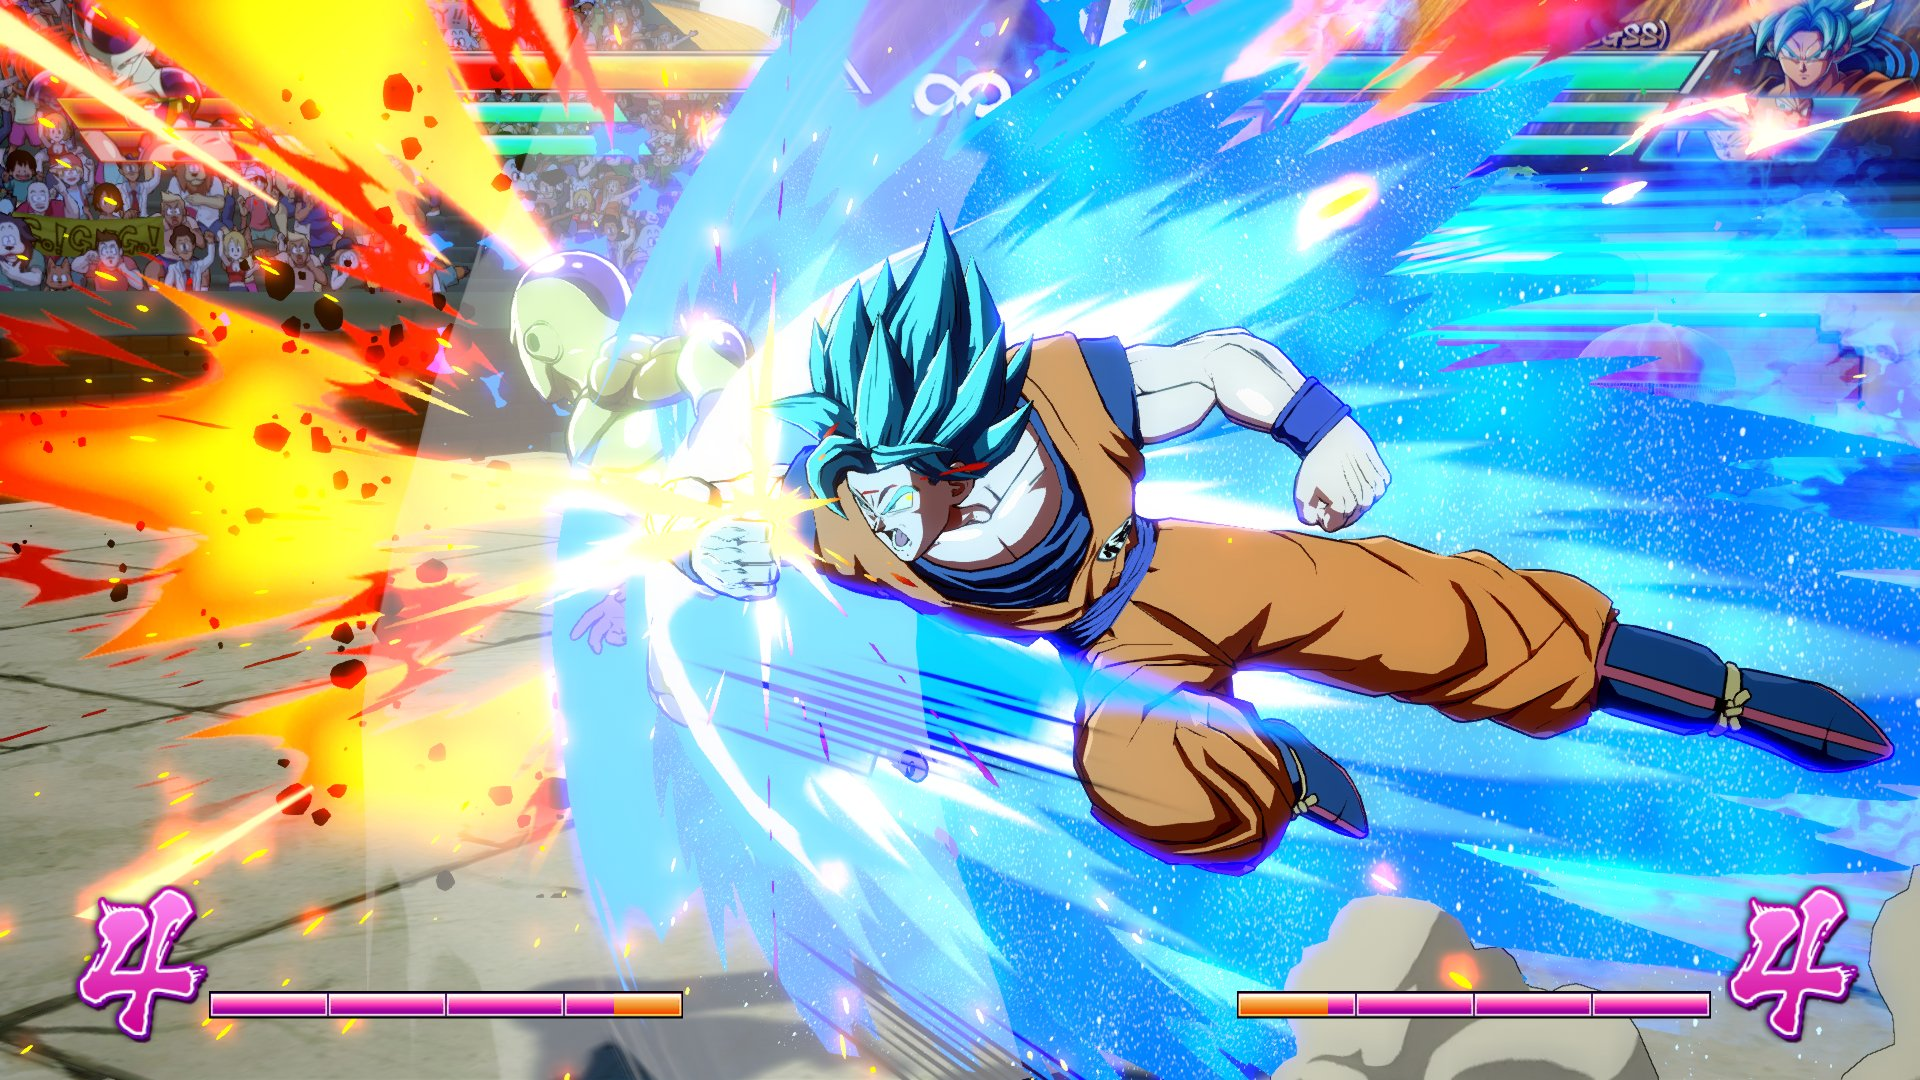 El 13 de Enero empieza la Beta de Dragon Ball FighterZ <br> <span style='color:#f96d5a;font-size:14px;font-weight: lighter;'>Primer juegazo de 2018</span>